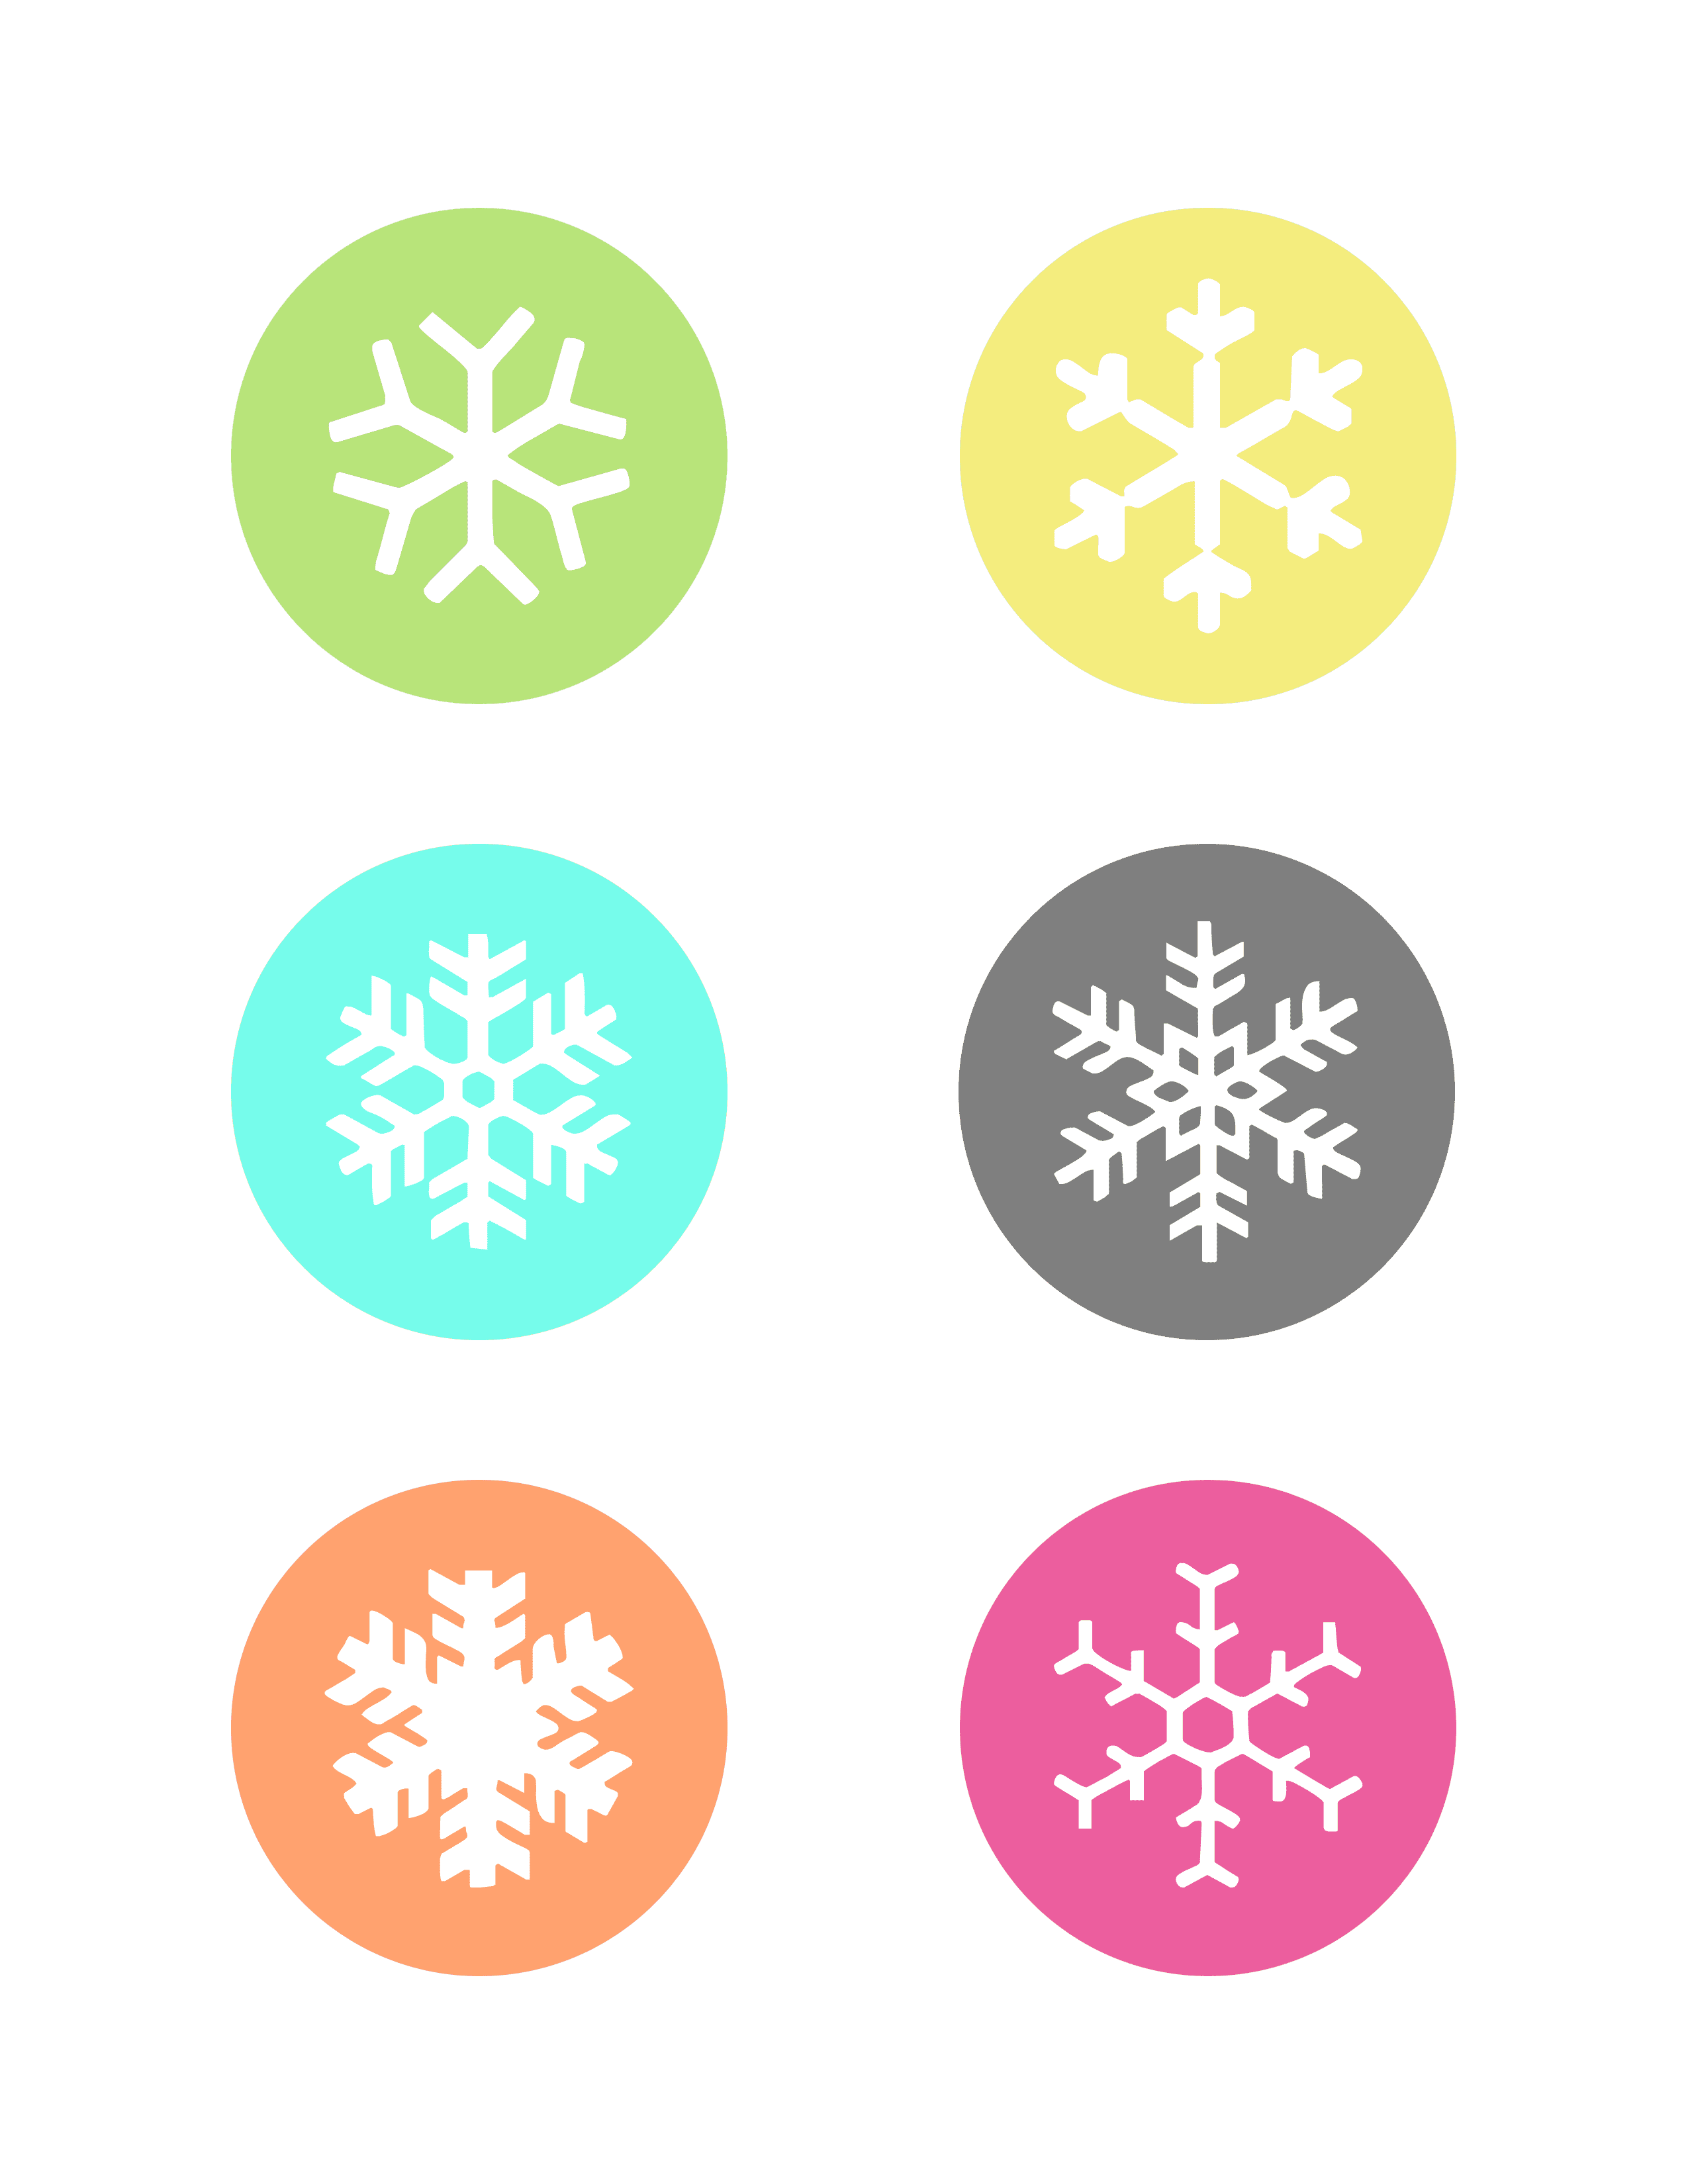 Printable Snowflake Patterns To Color